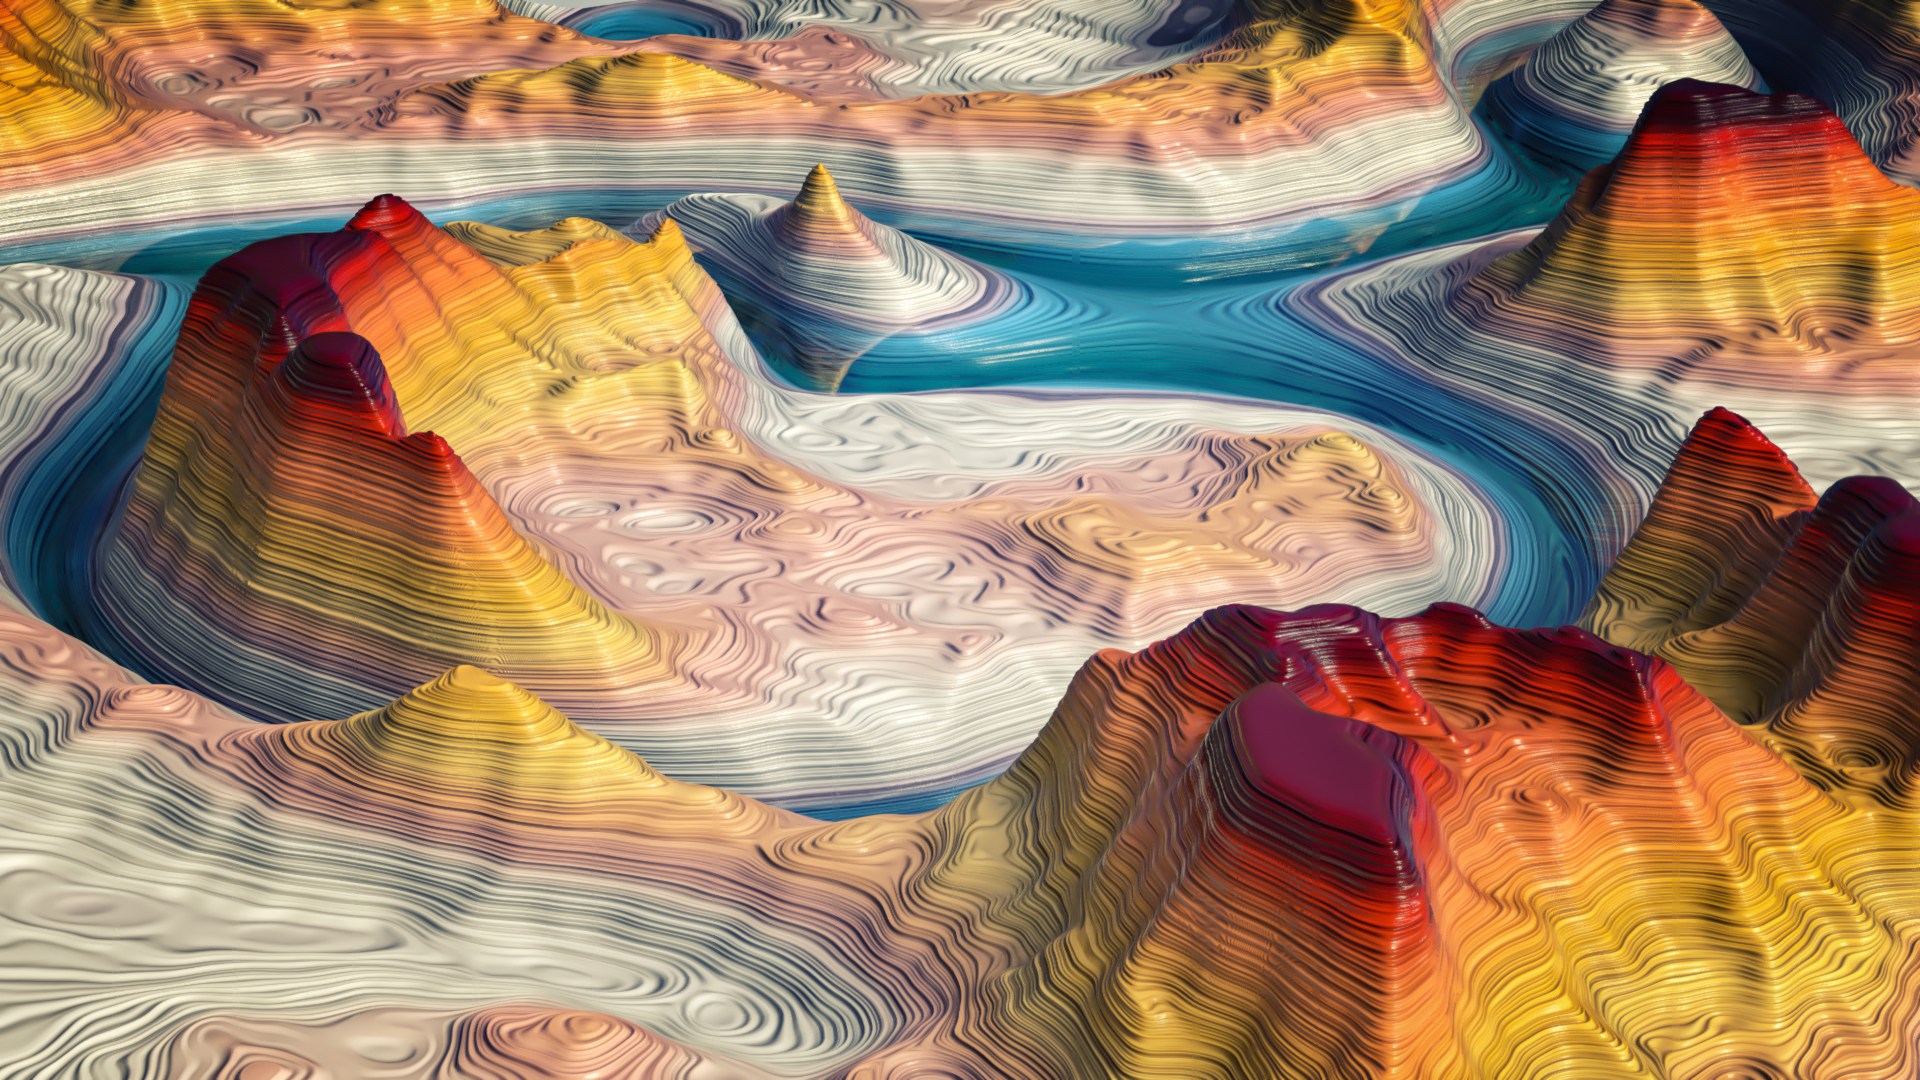 COLORFUL CANYON by NIKOMEDIA